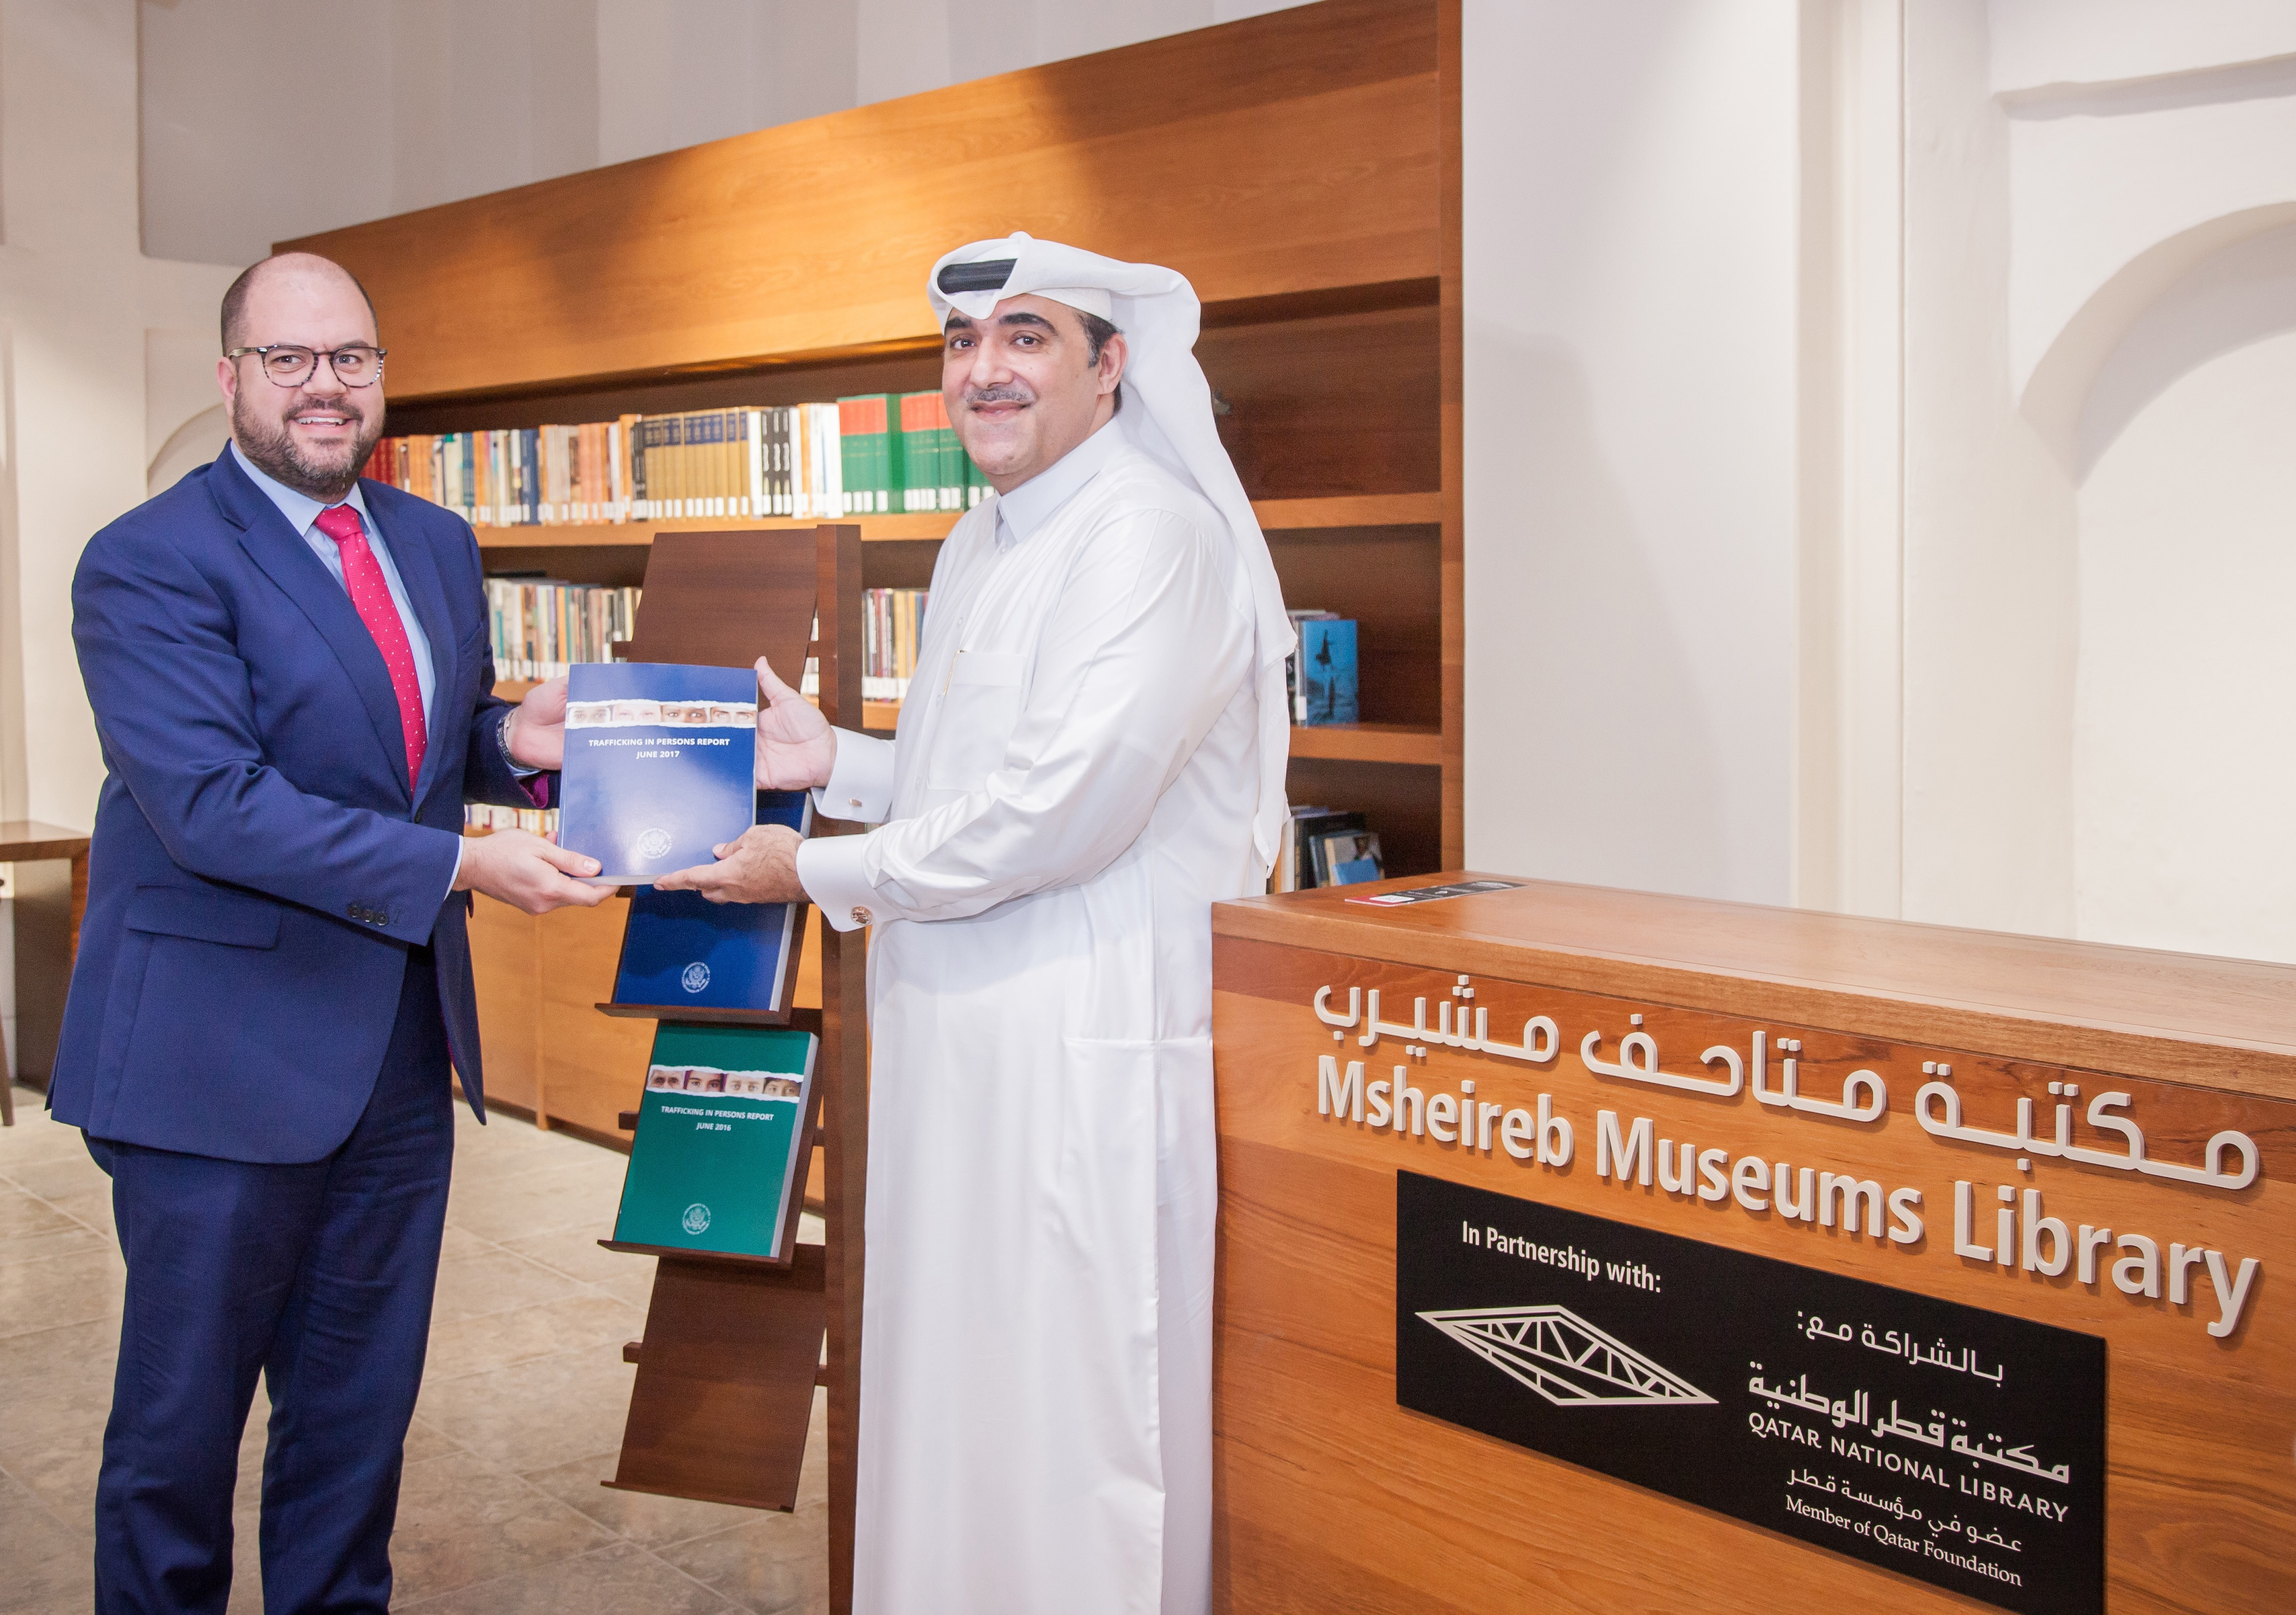 Msheireb Museums library receives 2017 Trafficking in Persons (TIP)